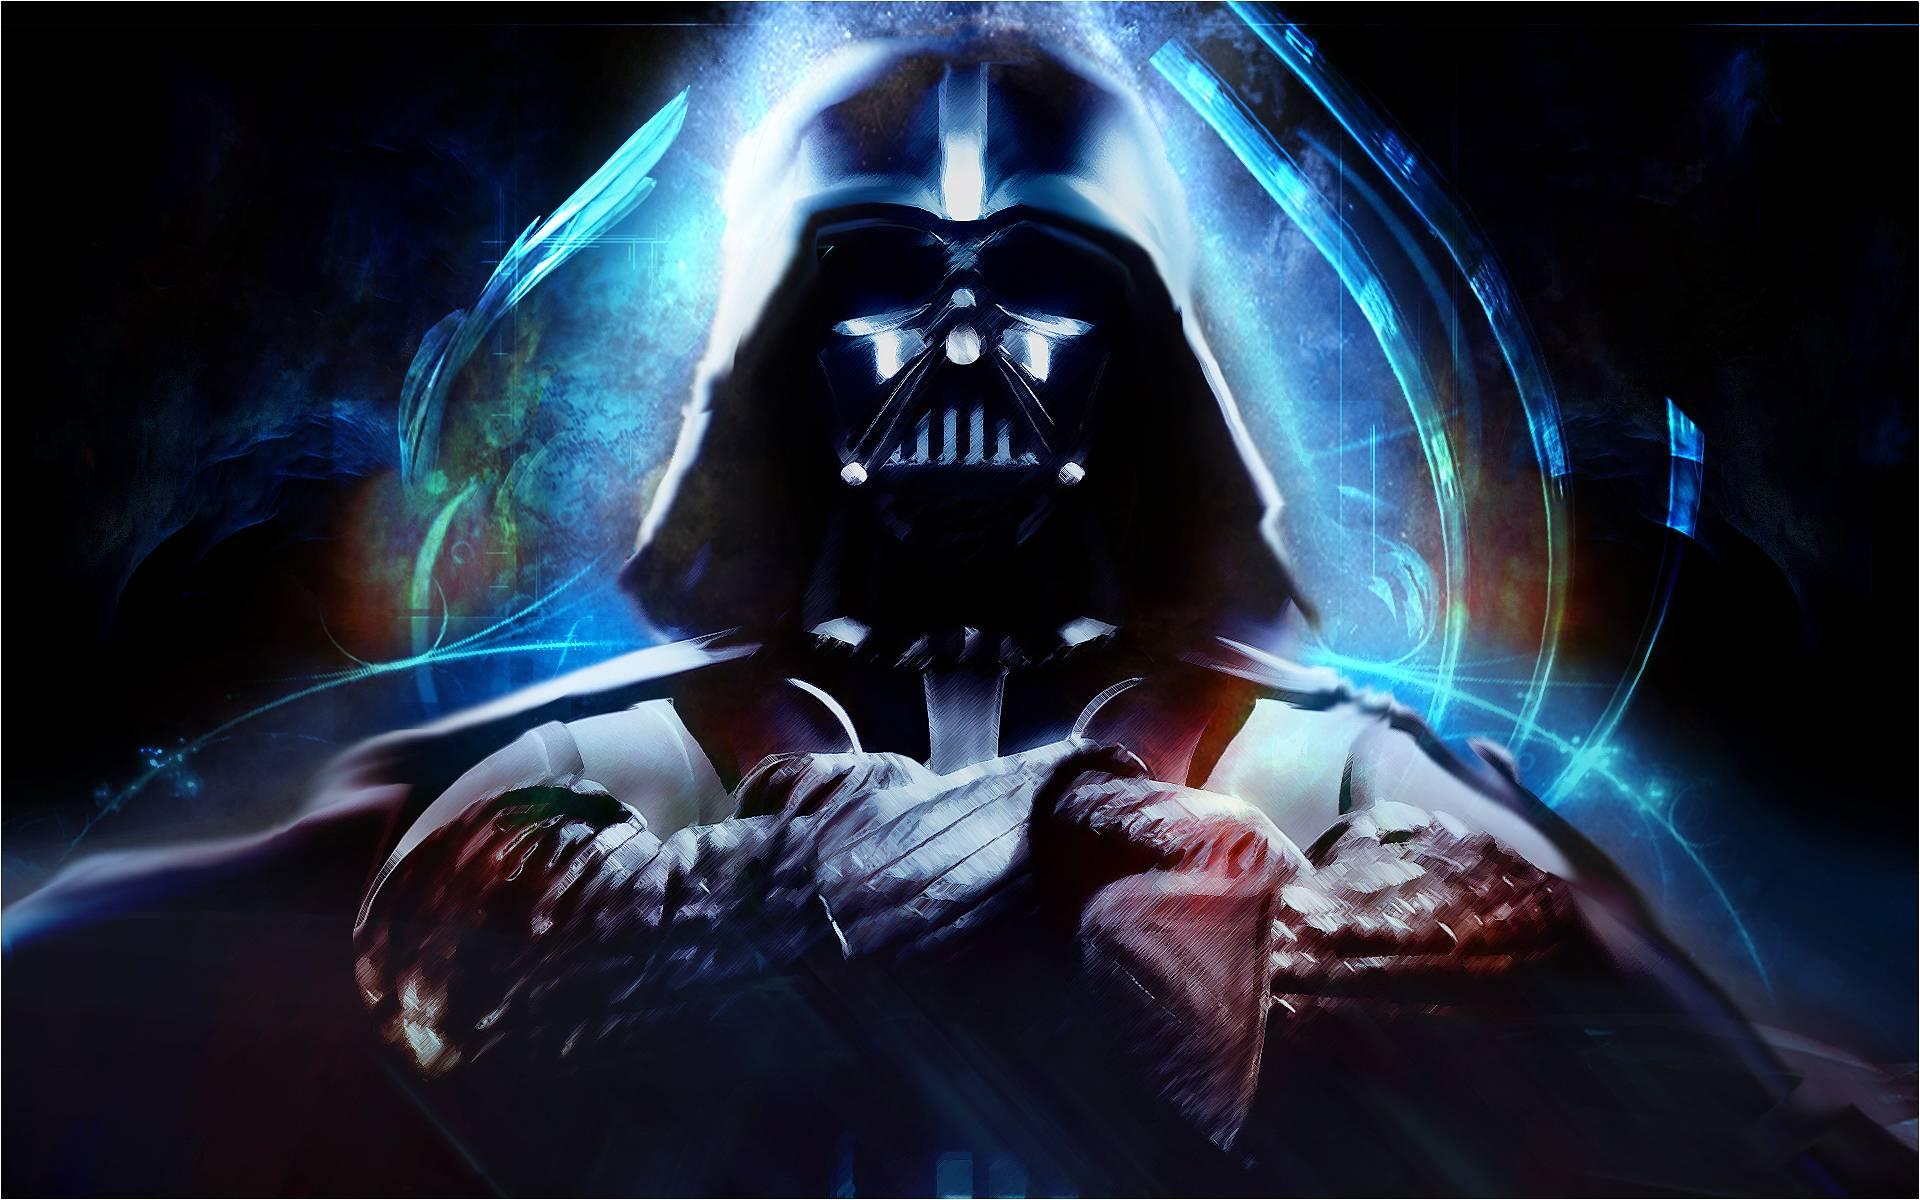 Star war HD wallpaper for download